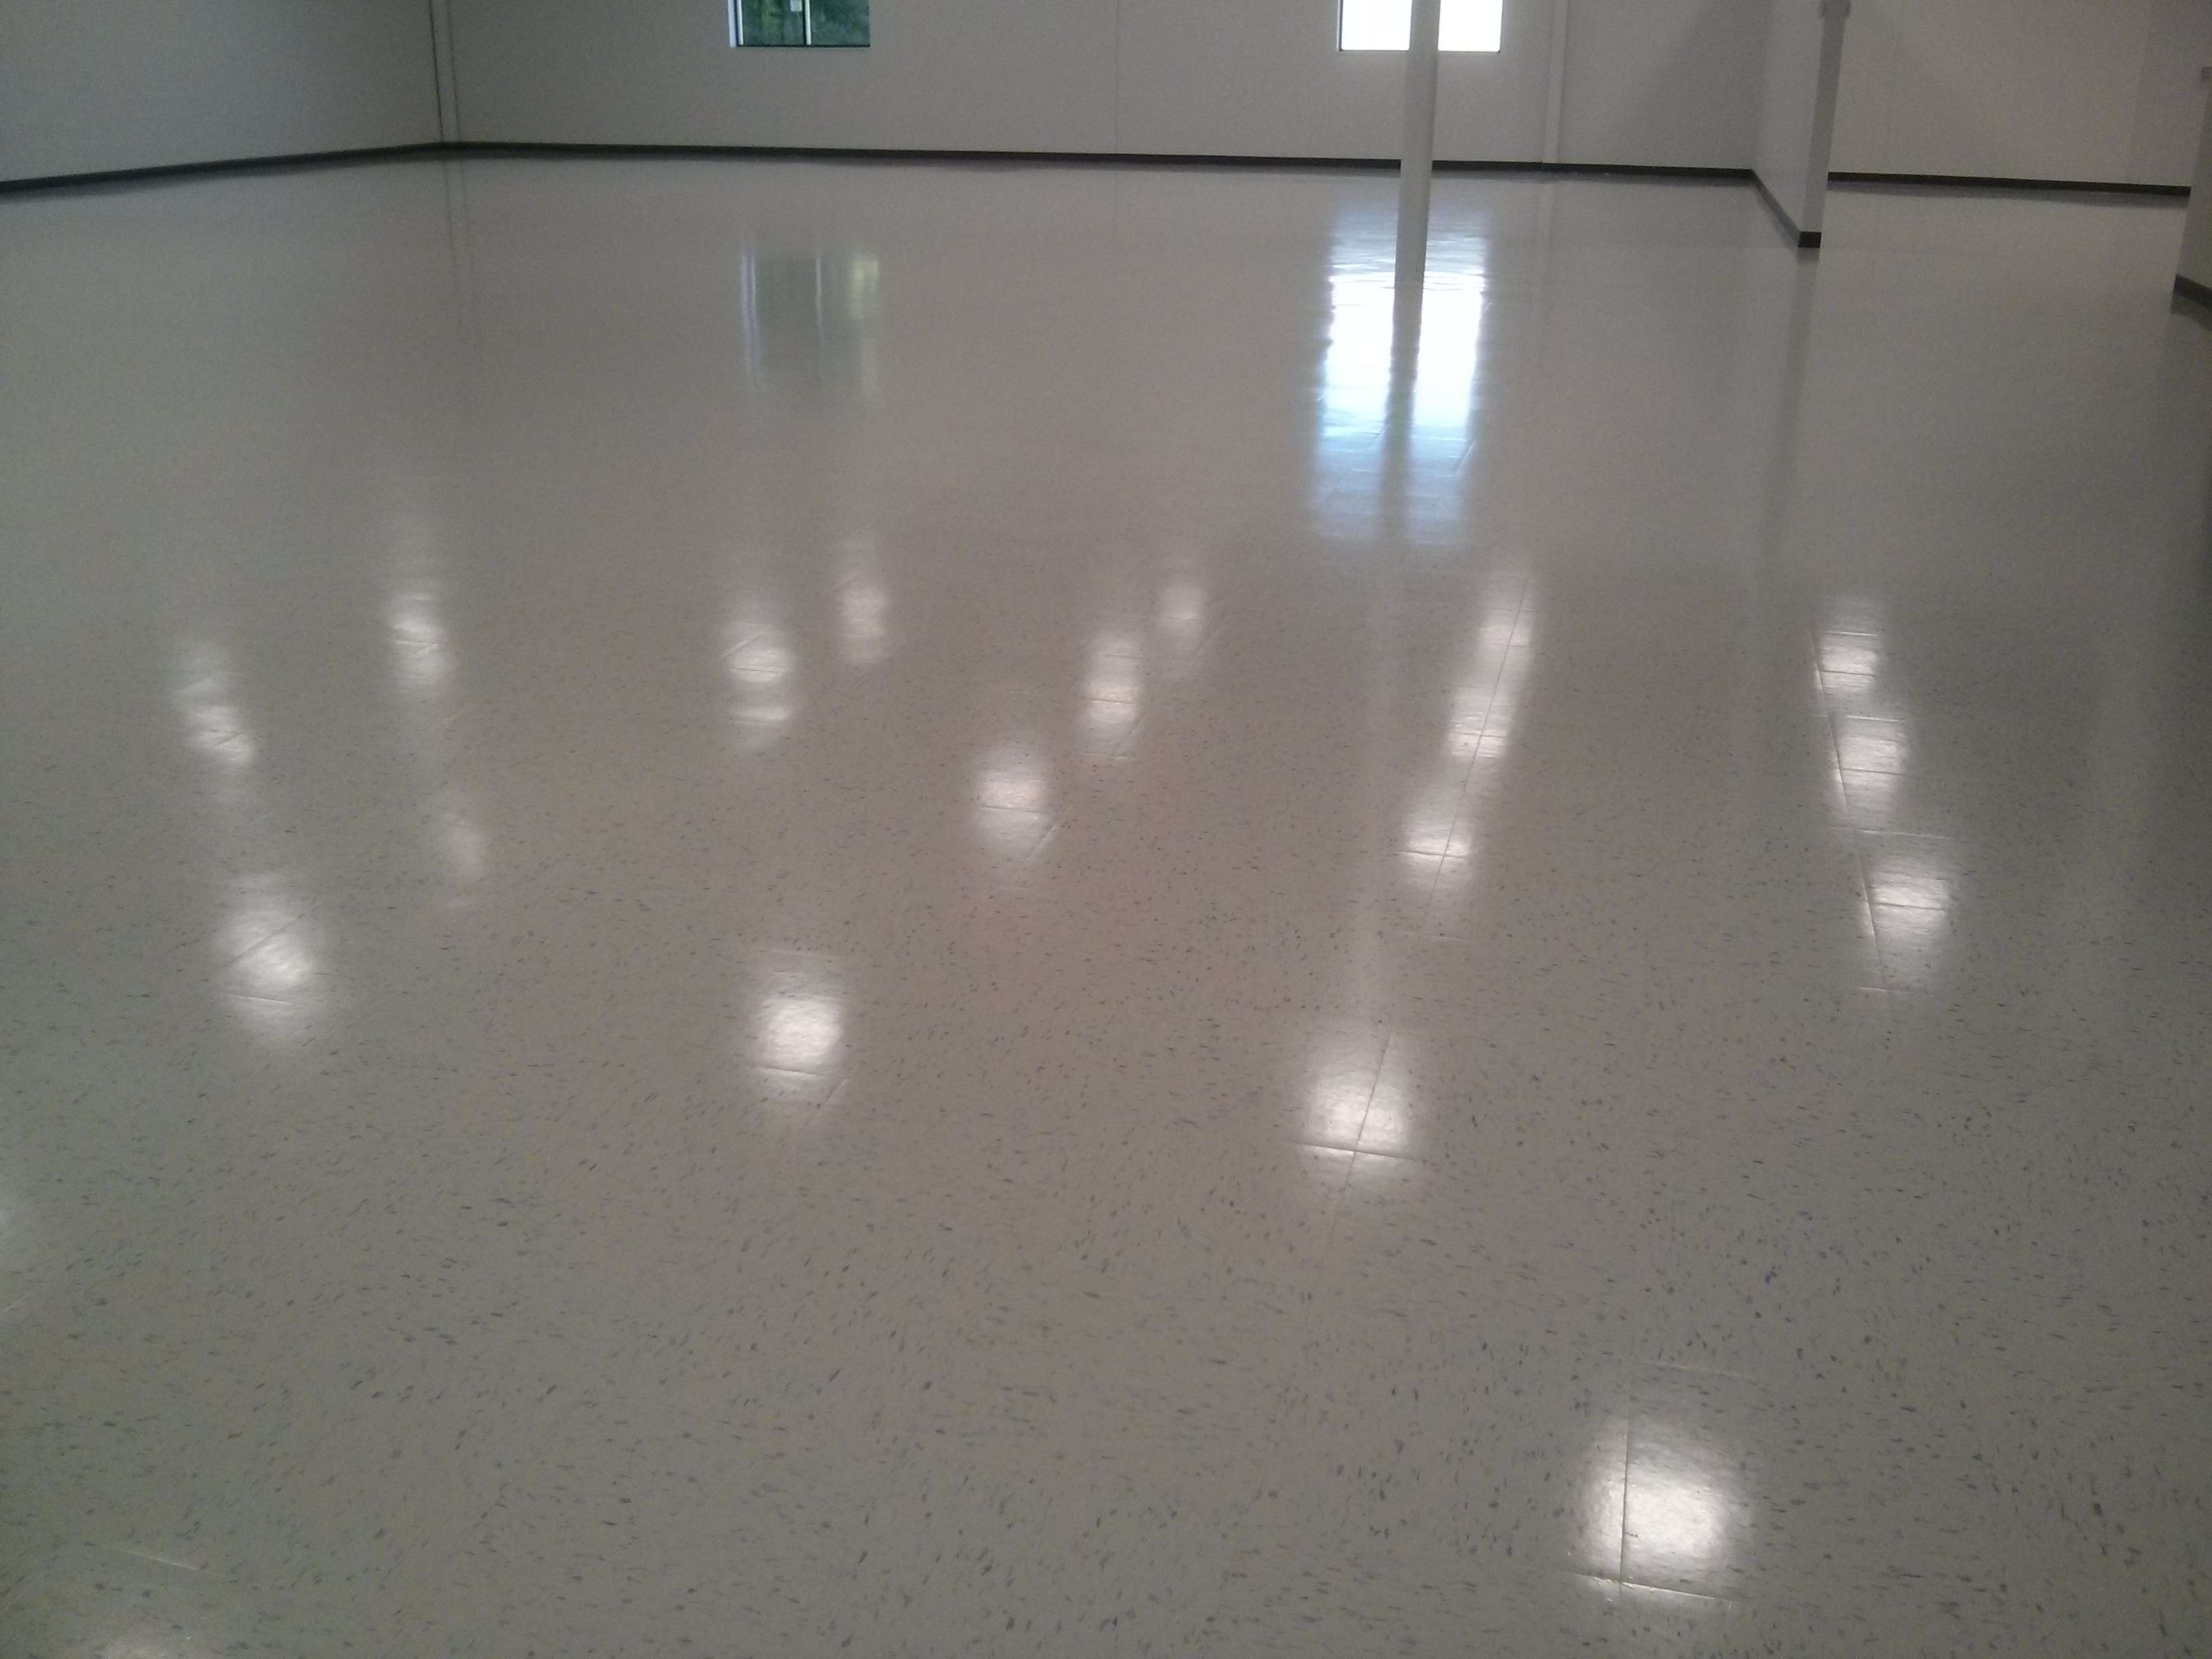 New Construction VCT Floor Tile Cleaning Sealing And Clear Coat Finish - Clear coat for tile floors